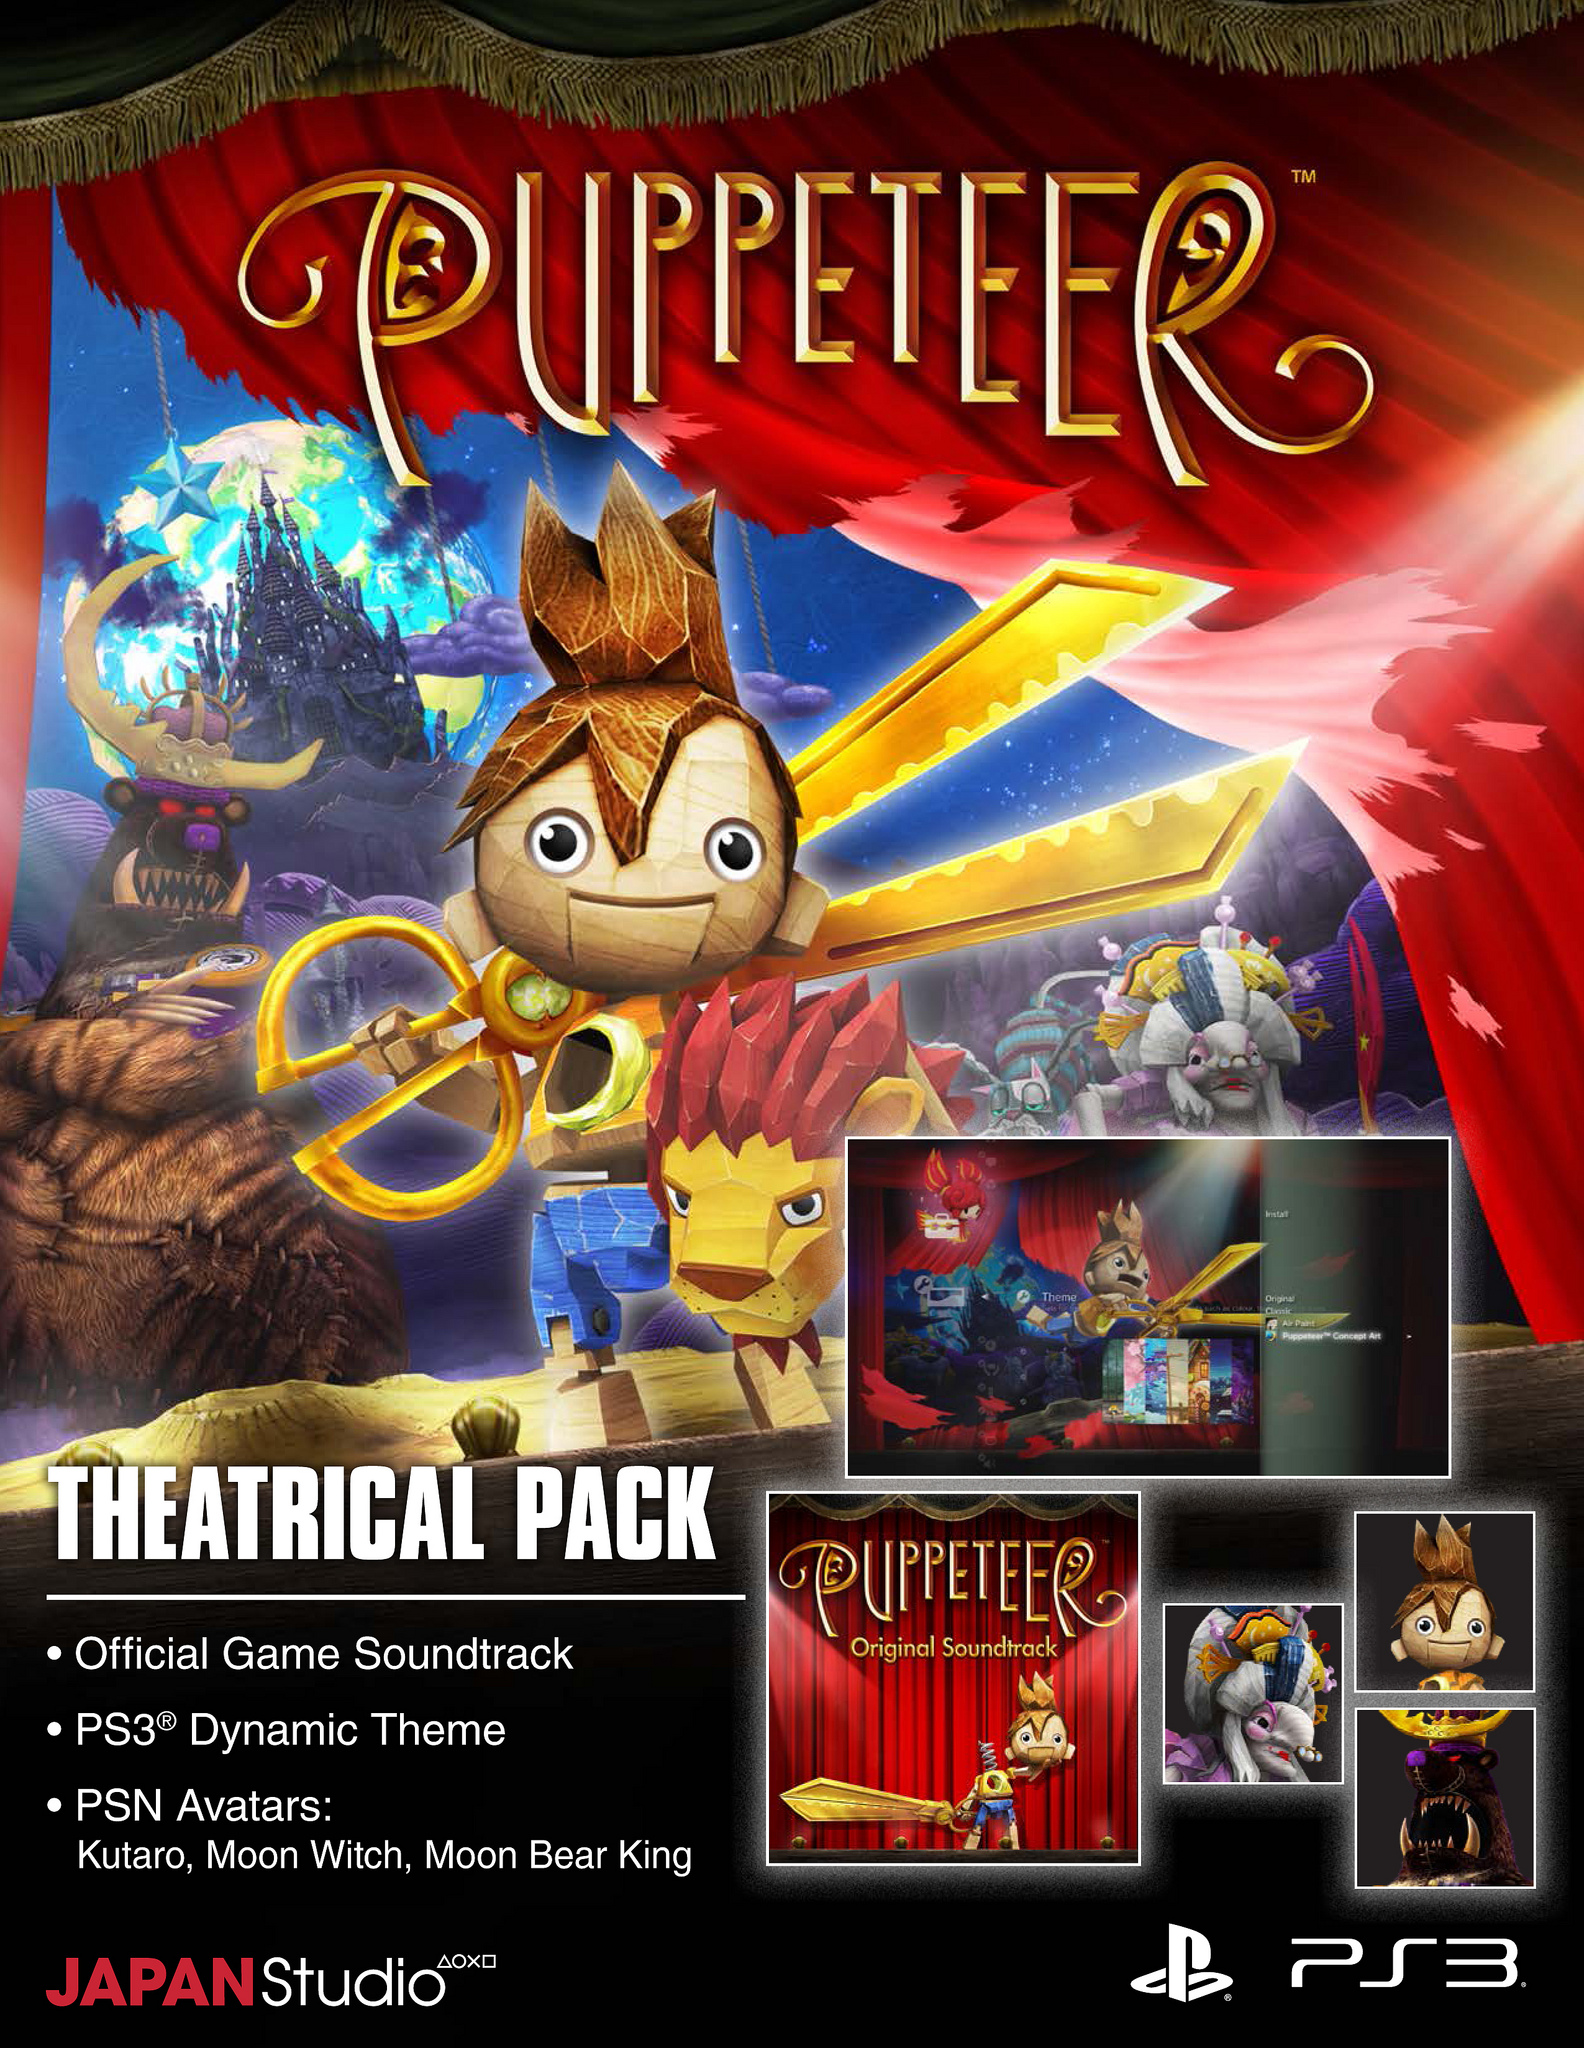 puppeteer-theatrical-pack